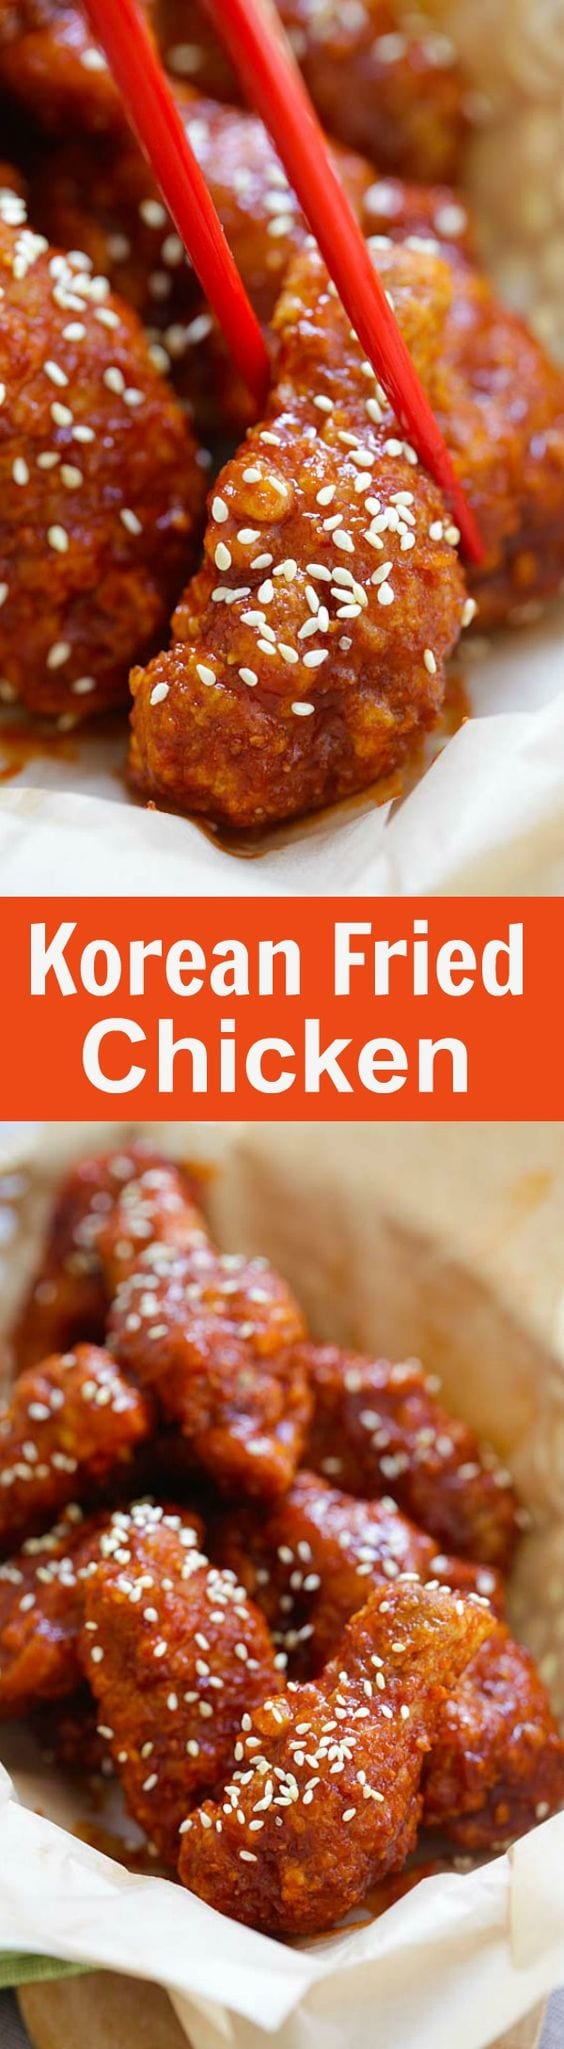 Korean Fried Chicken – the BEST Korean fried chicken recipe that yields crispy fried chicken in spicy, savory and sweet sauce. Finger lickin' good! | rasamalaysia.com